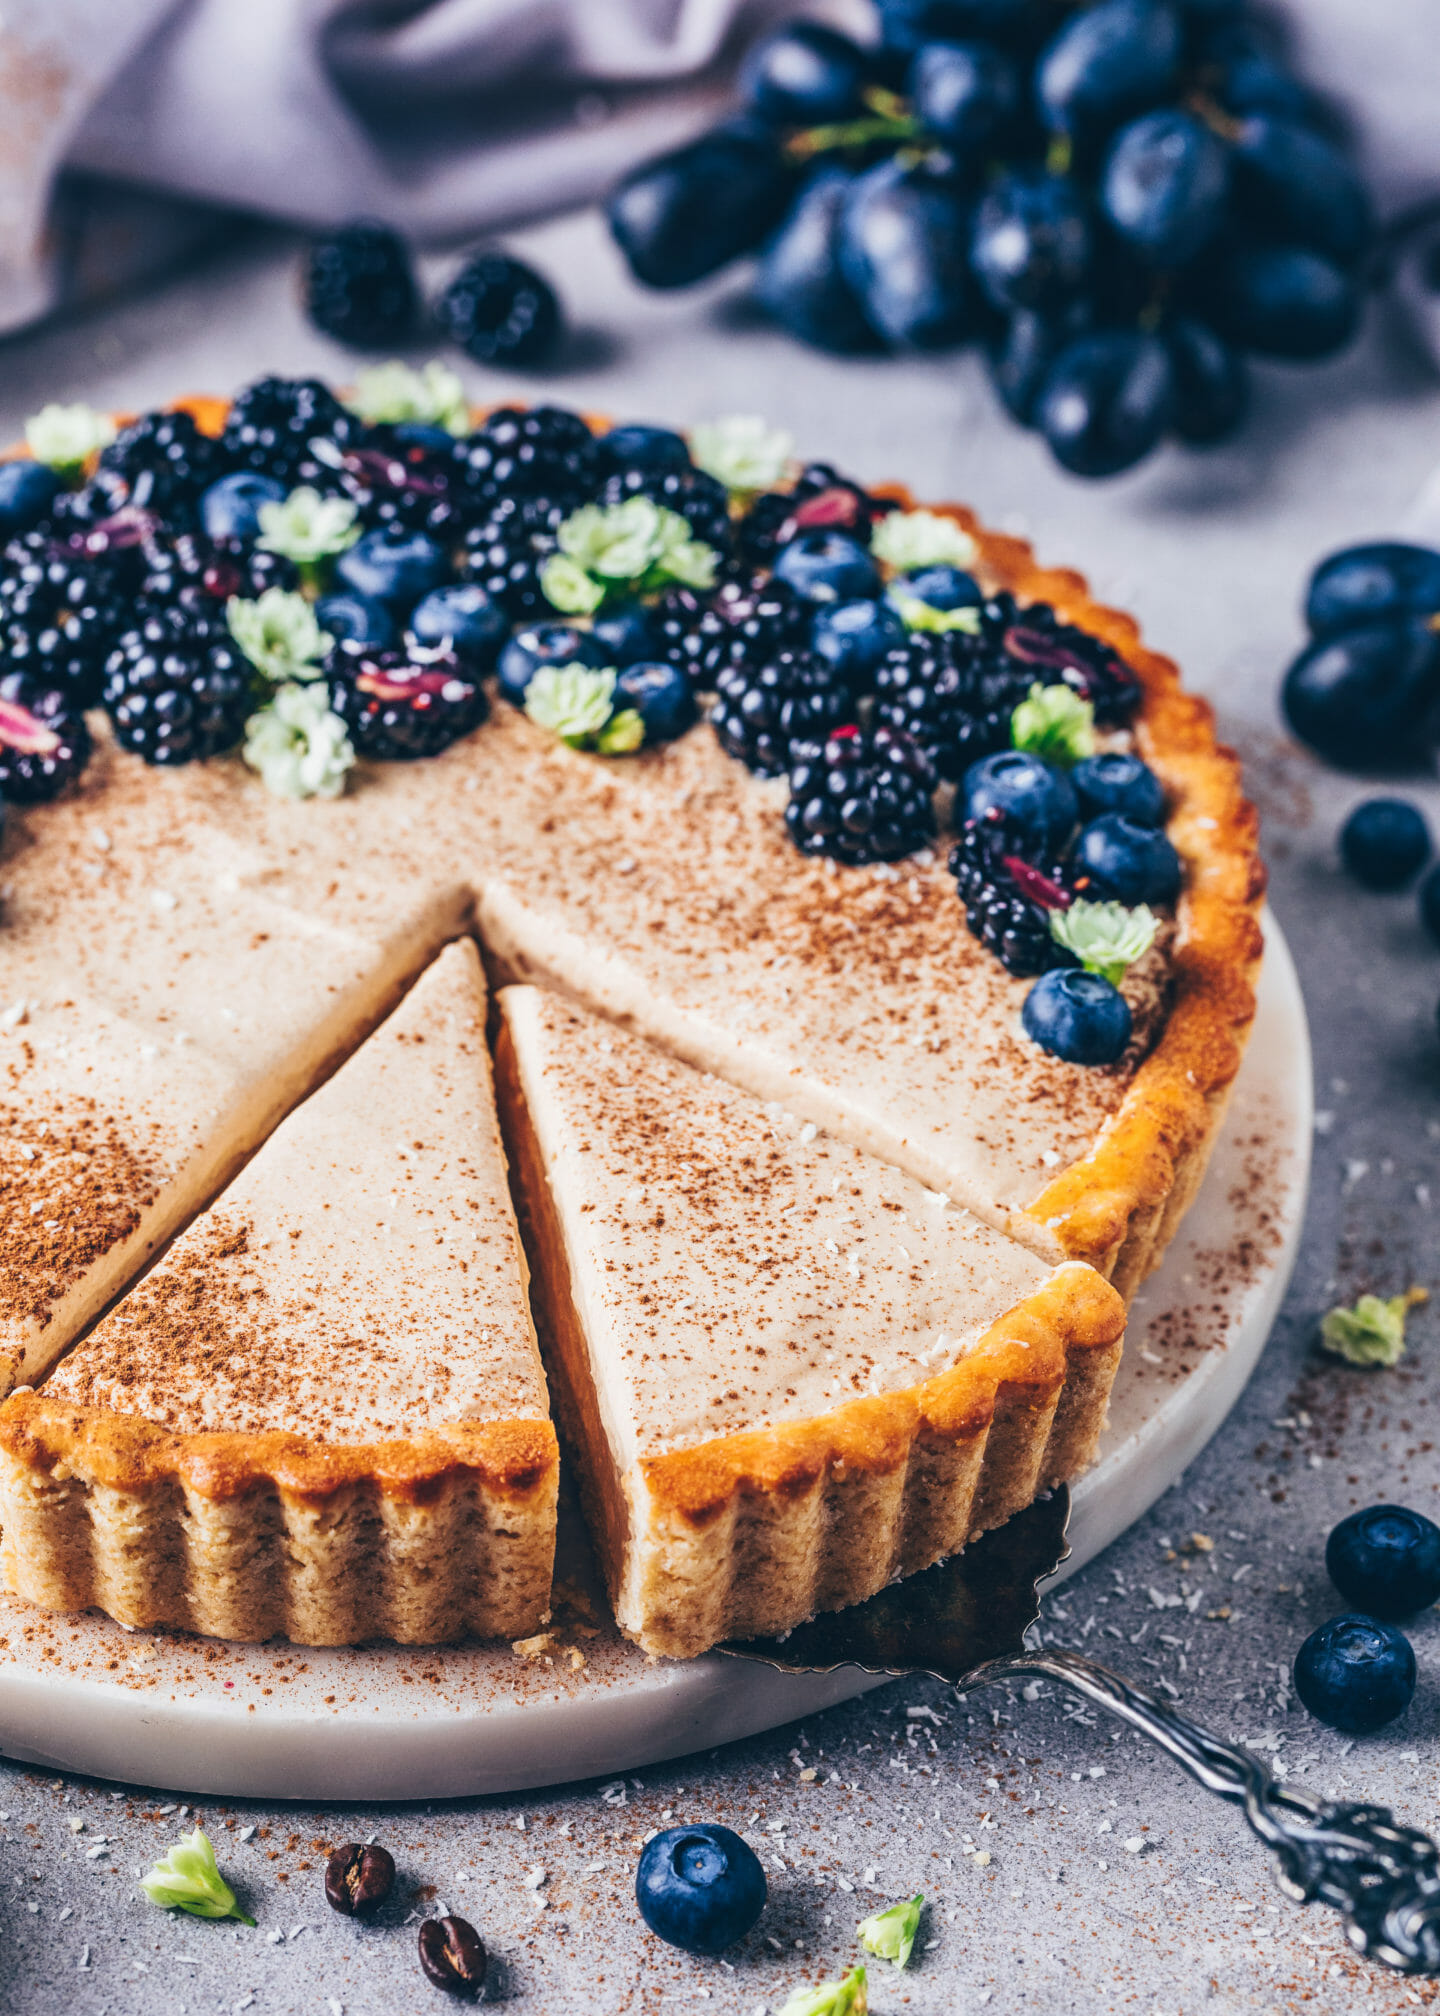 Milk Tart with vanilla pudding, cinnamon, coffee mousse, blueberries, blackberries and grapes